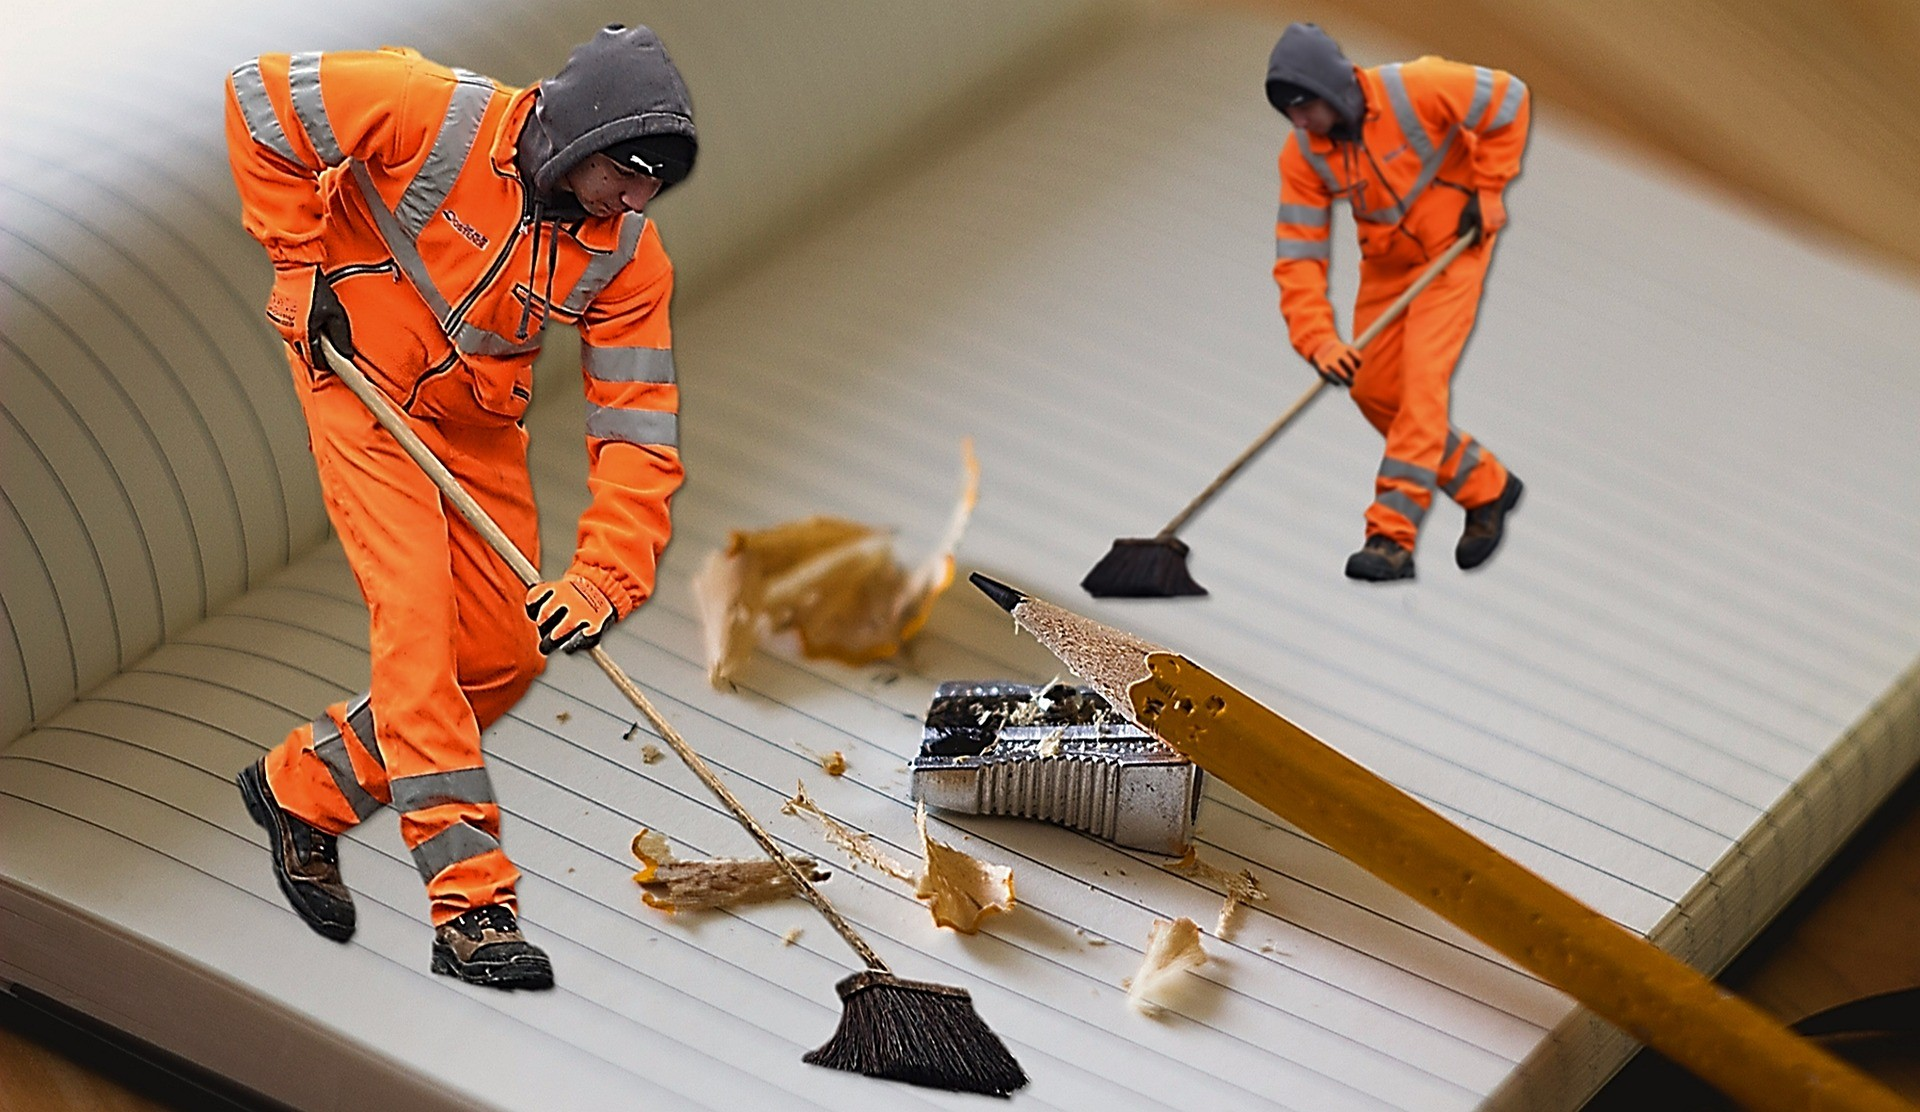 cleaning-2055336_1920